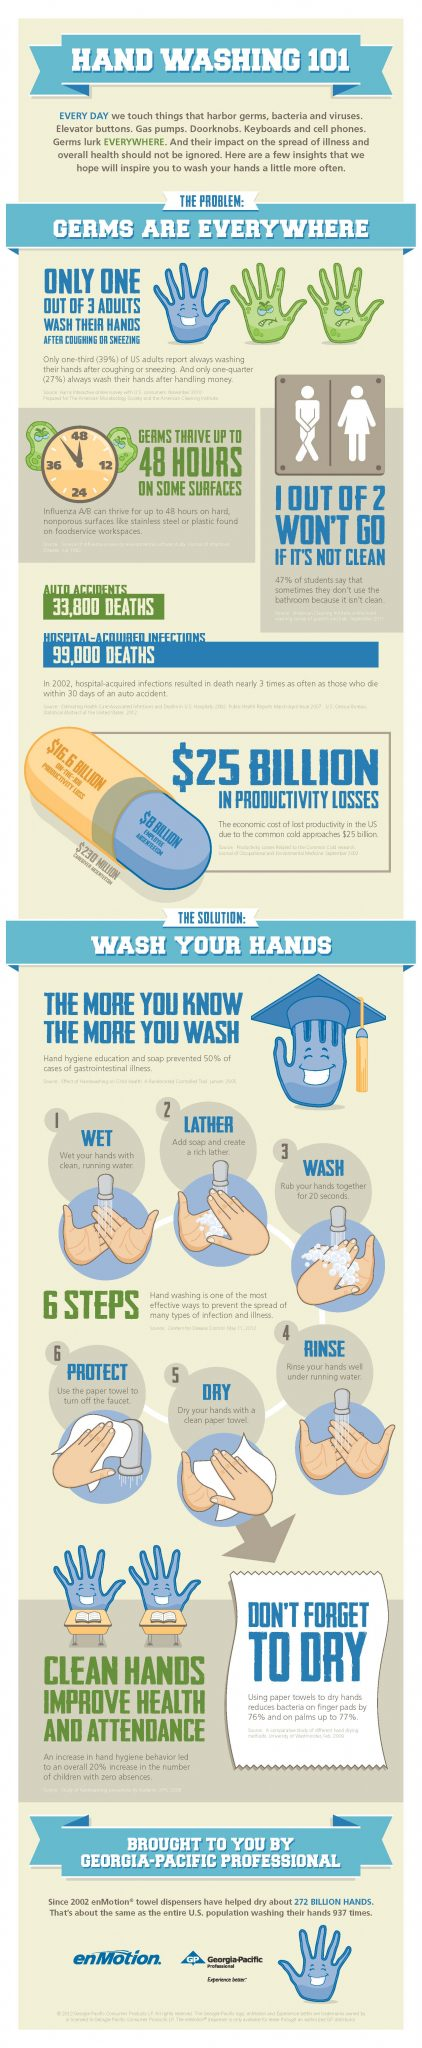 Infographic: Hand Washing 101 | Penn Jersey Paper